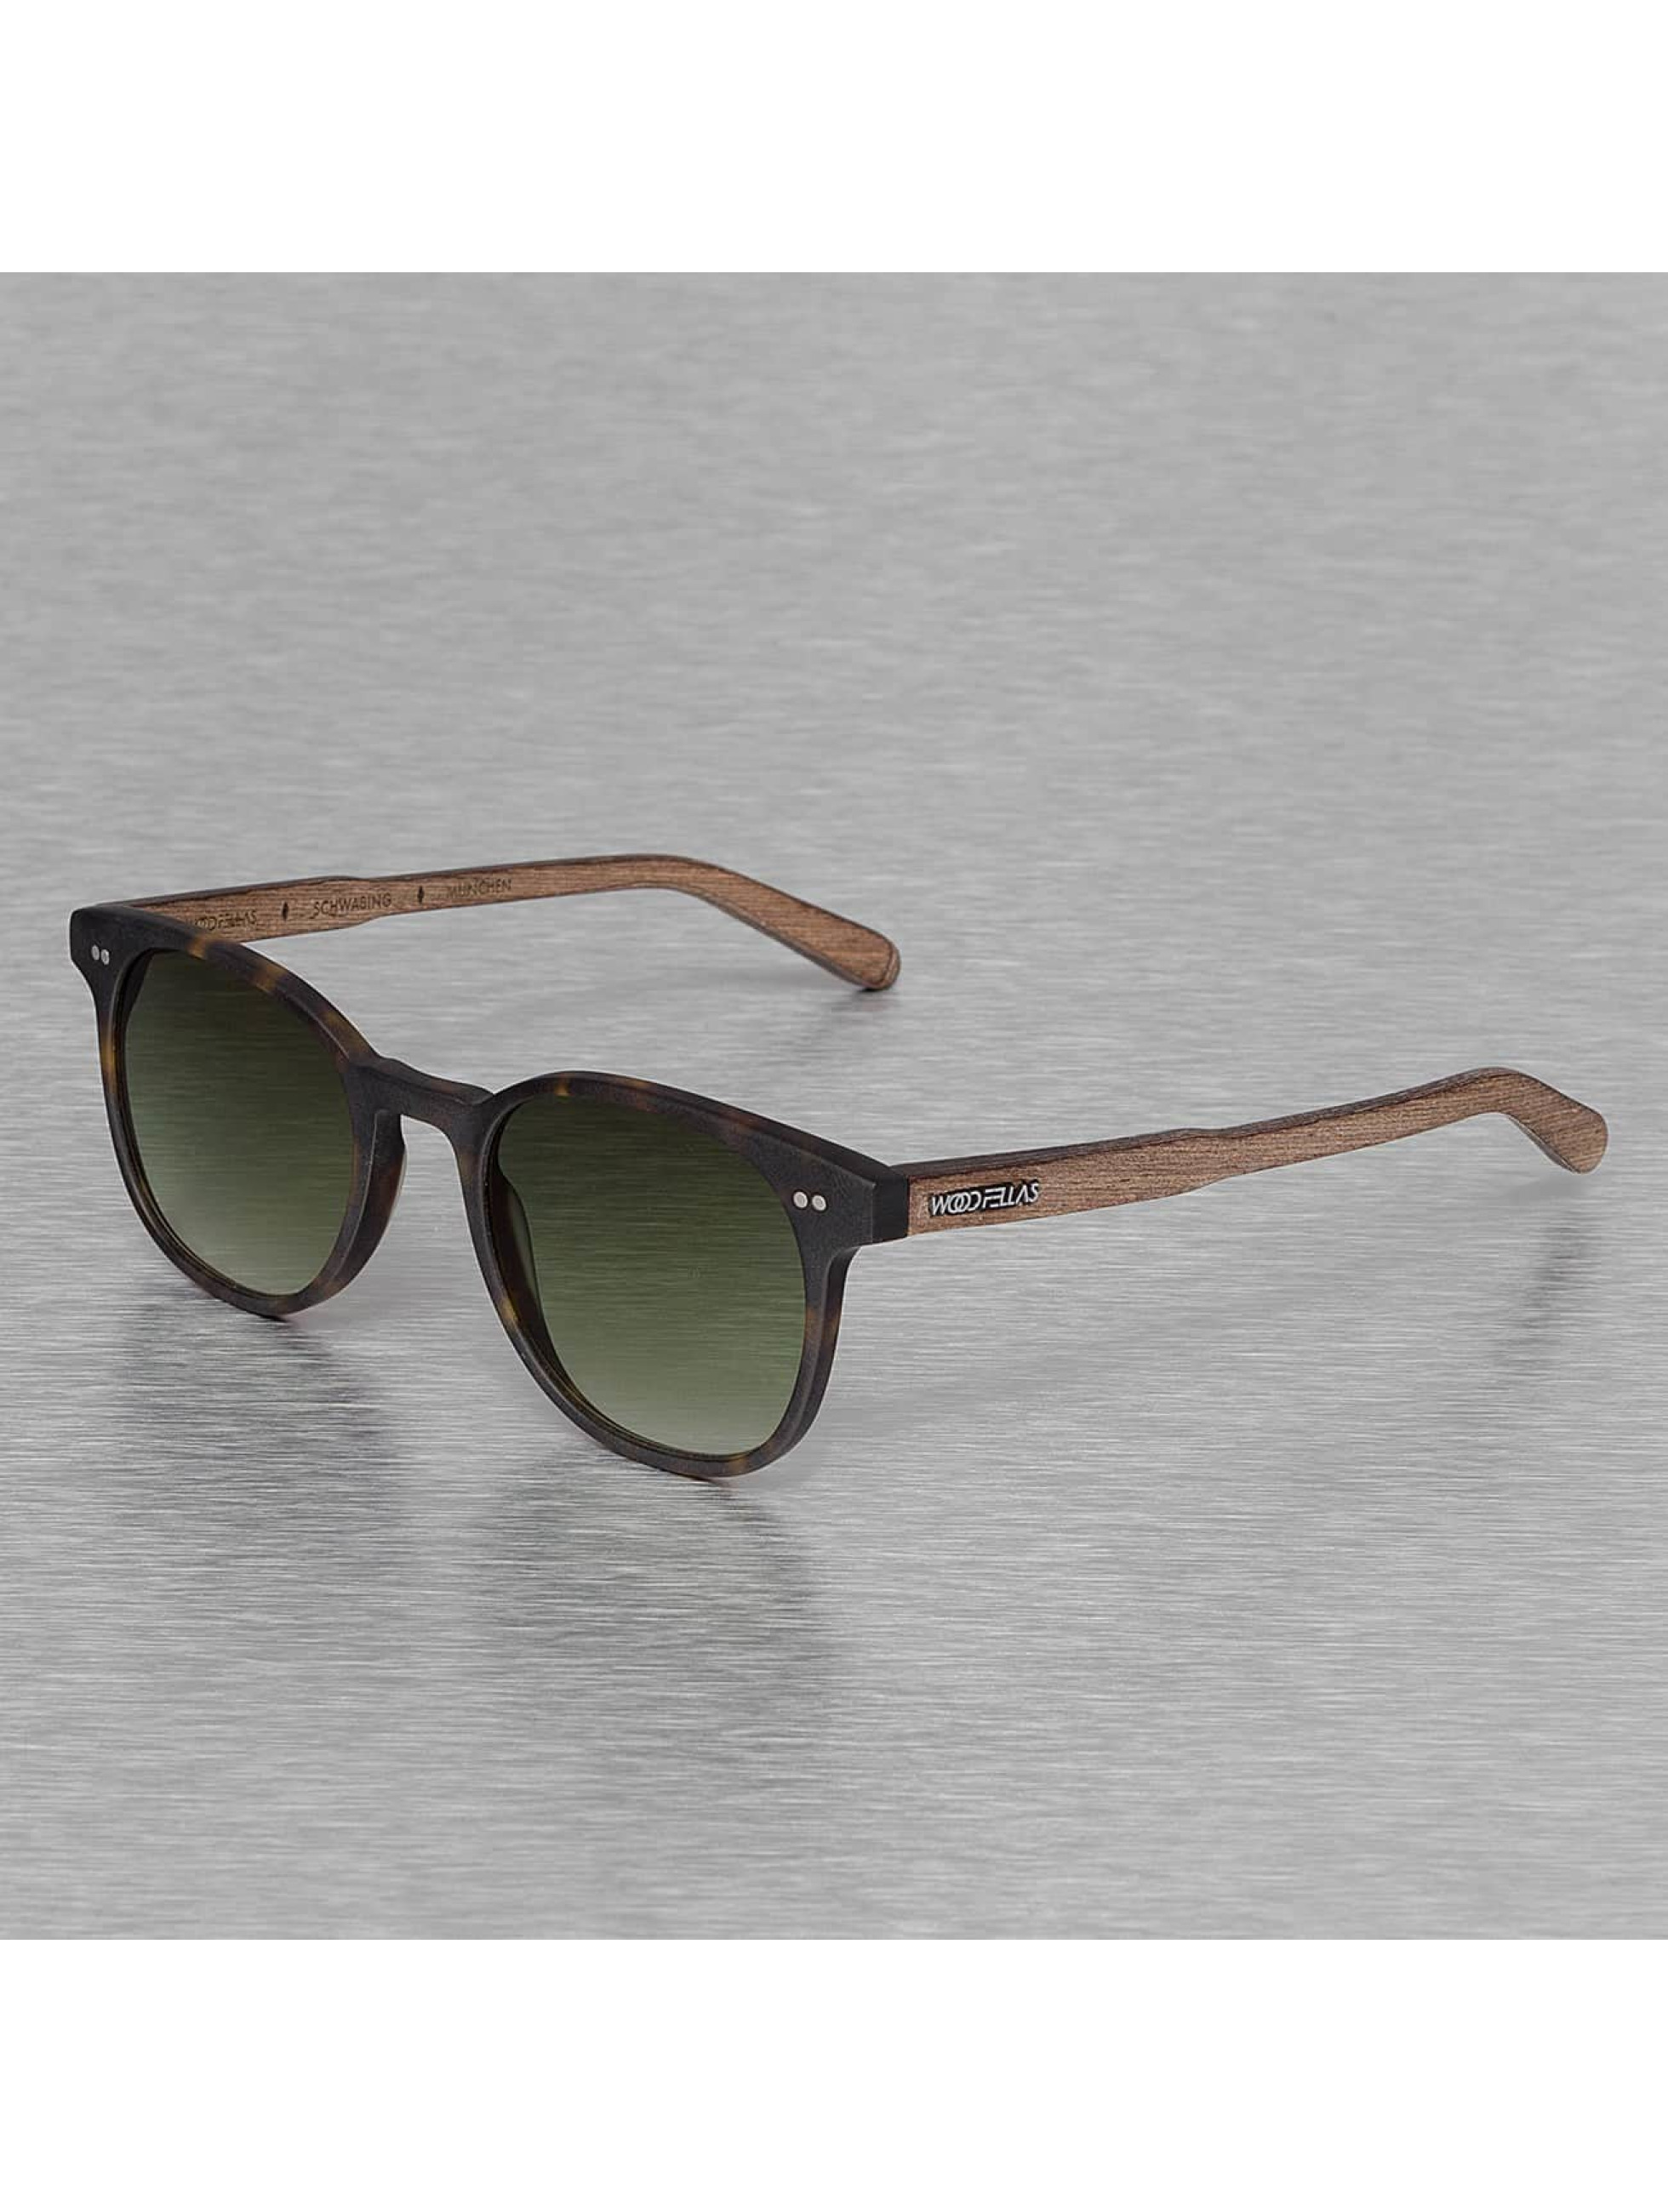 Wood Fellas Eyewear Aurinkolasit Eyewear Schwabing Polarized Mirror ruskea